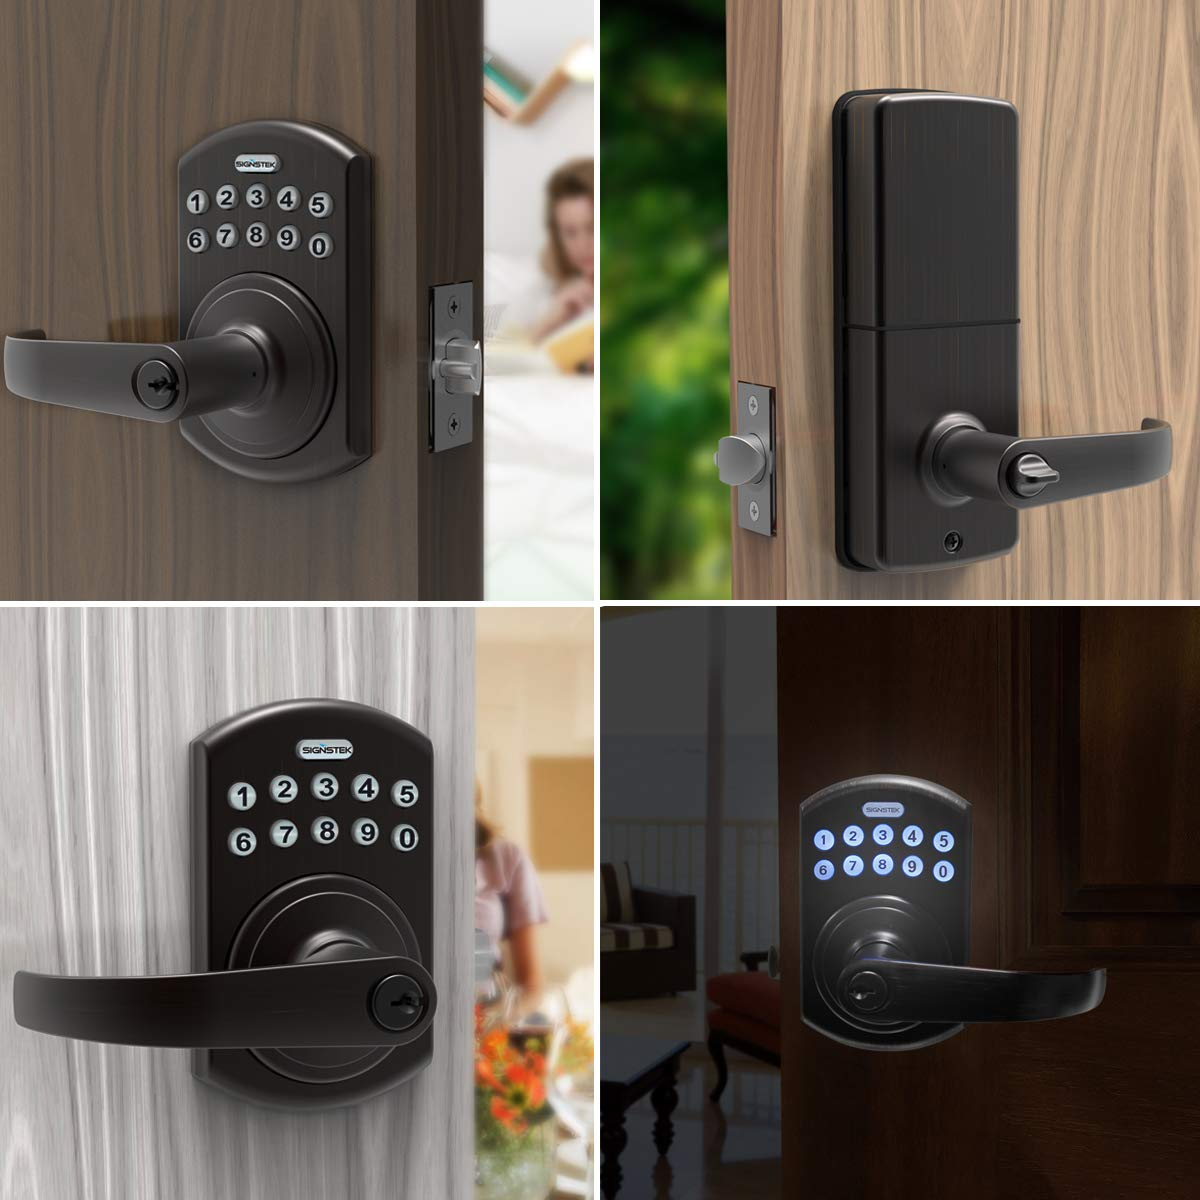 Signstek Keypad Entry Lever Door Lock with LED Backlit Keypad Password/Key Accessibles, Oil Rubbed Bronze by Signstek (Image #7)